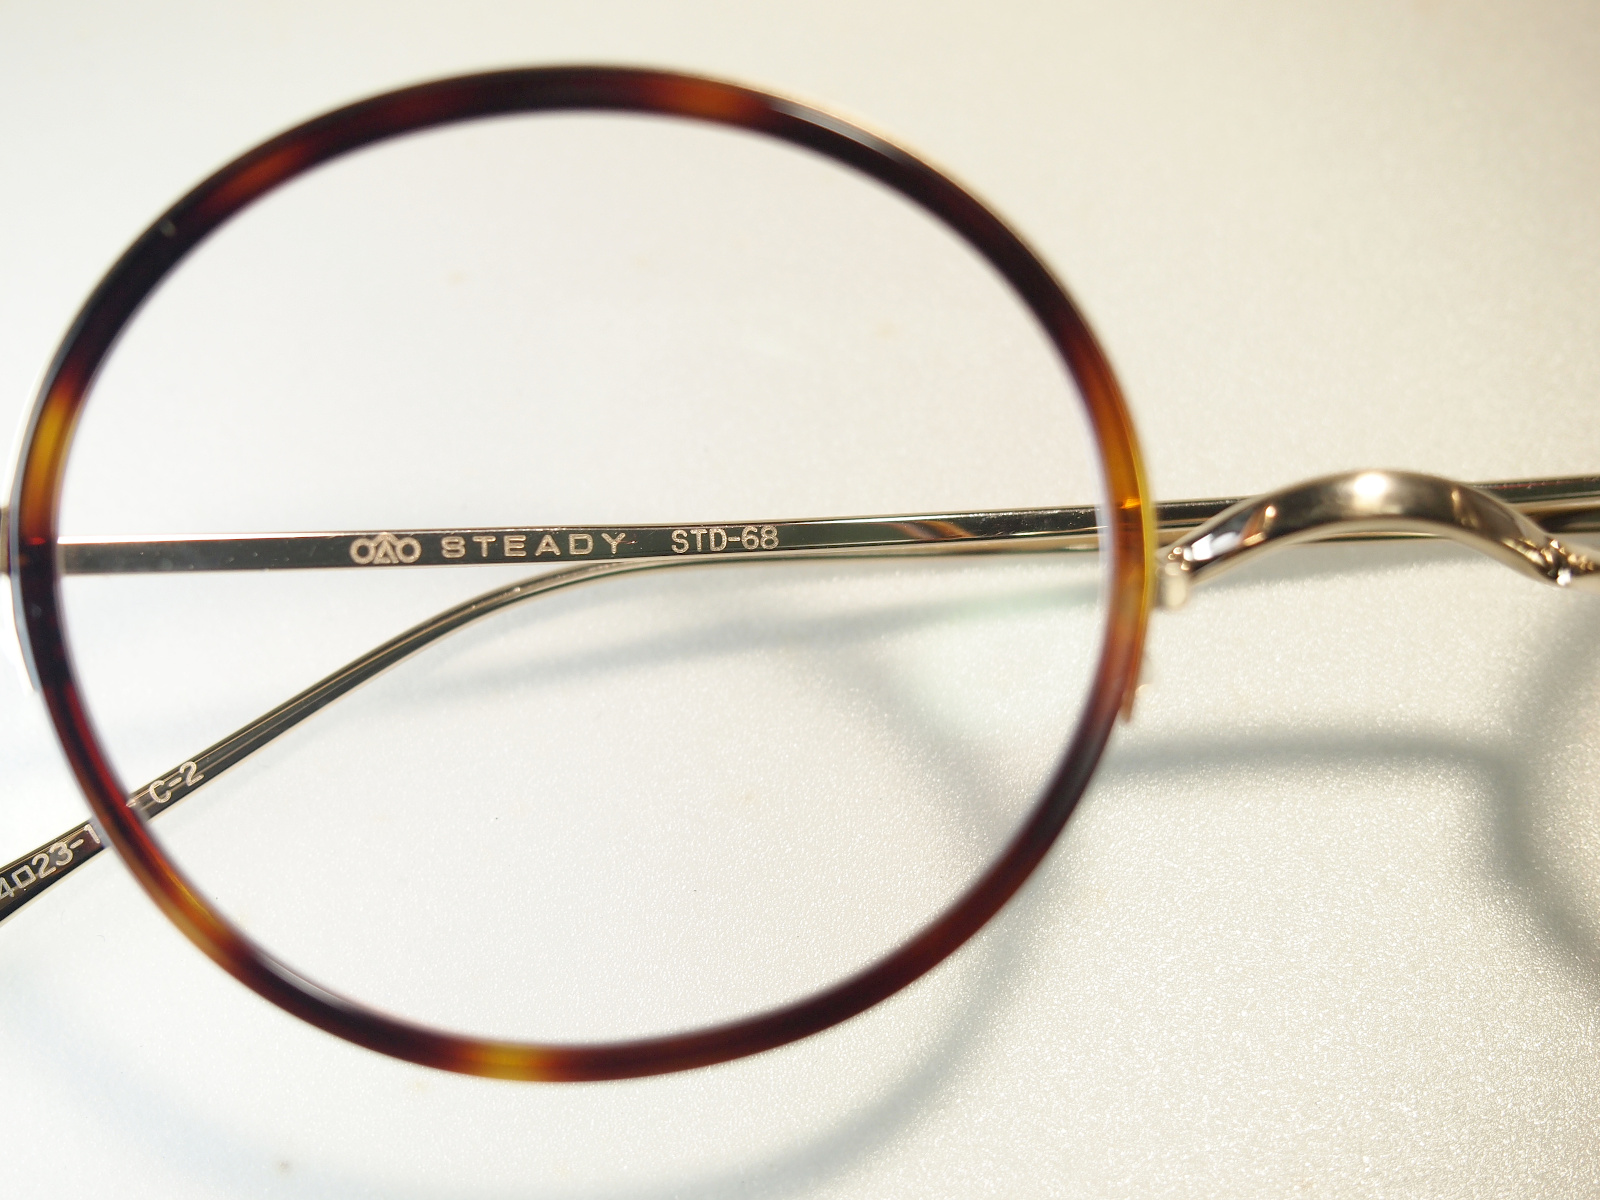 THE ORDINALY SPECTACLES